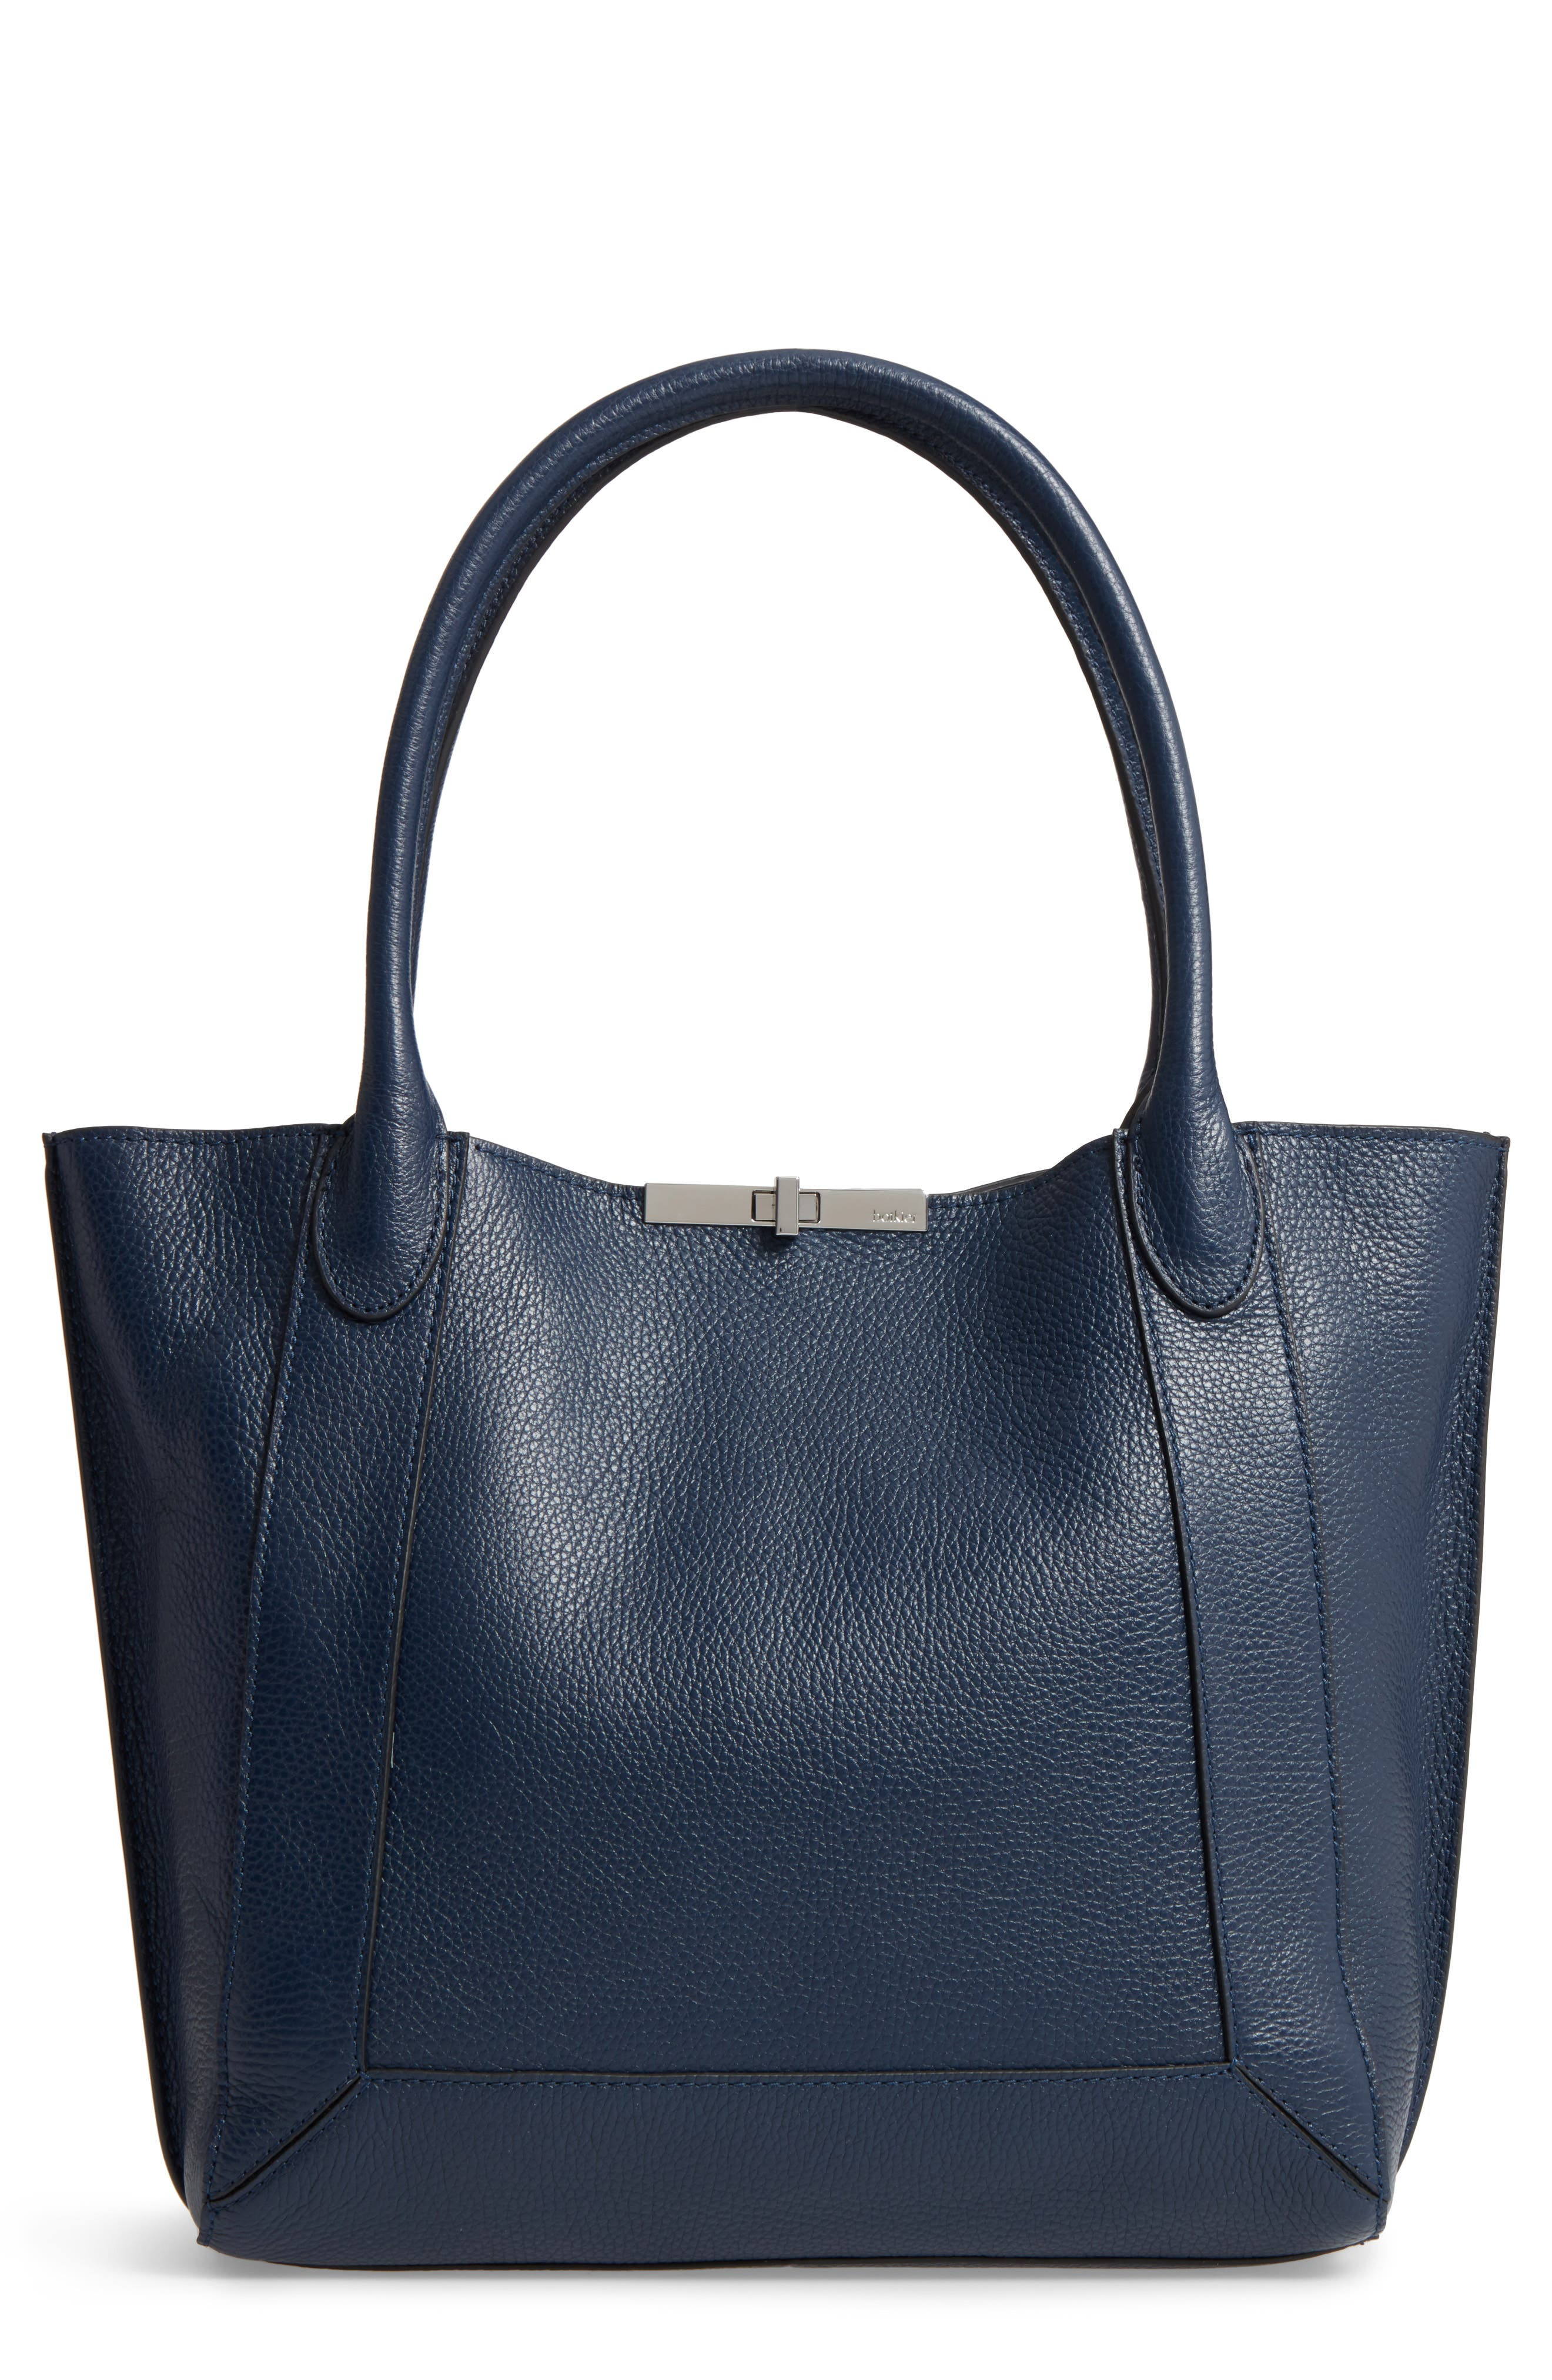 Alternate Image 1 Selected - Botkier Perry Leather Tote